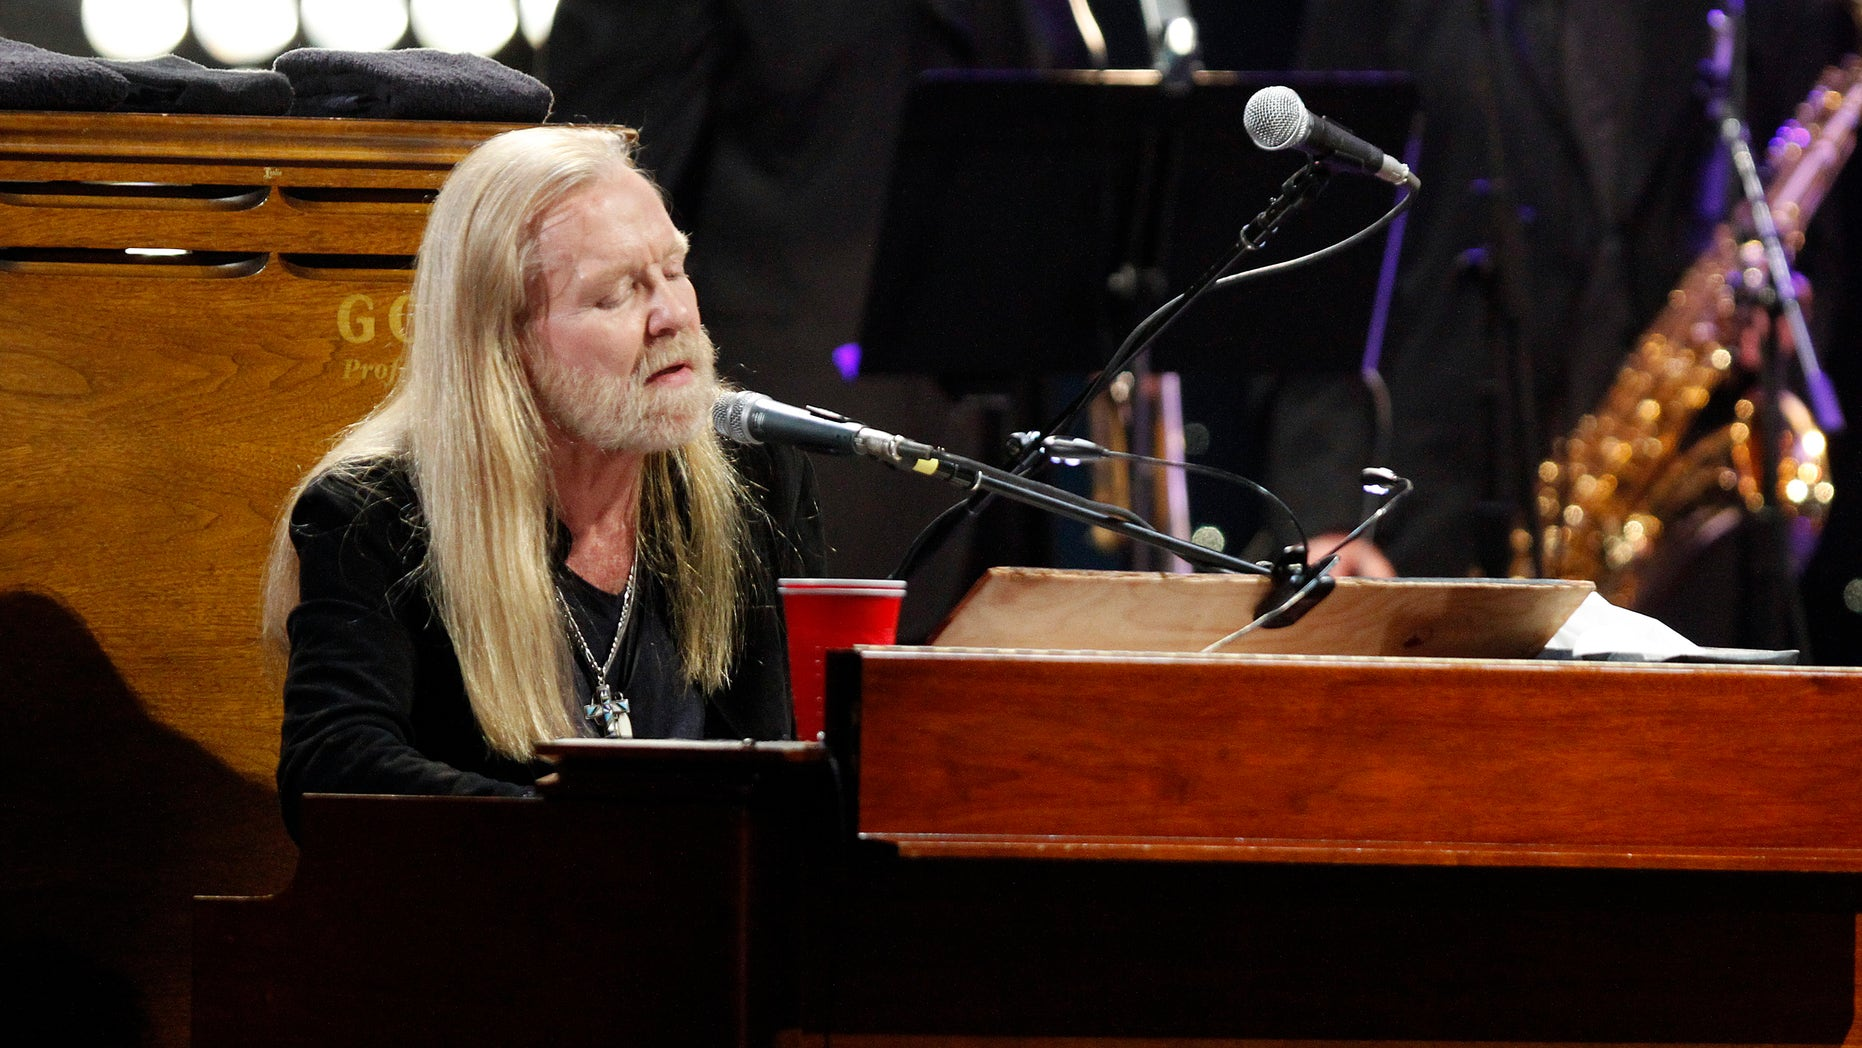 January 10, 2014. Gregg Allman performed at All My Friends: Celebrating The Songs and Voice of Gregg Allman in Atlanta, Ga.